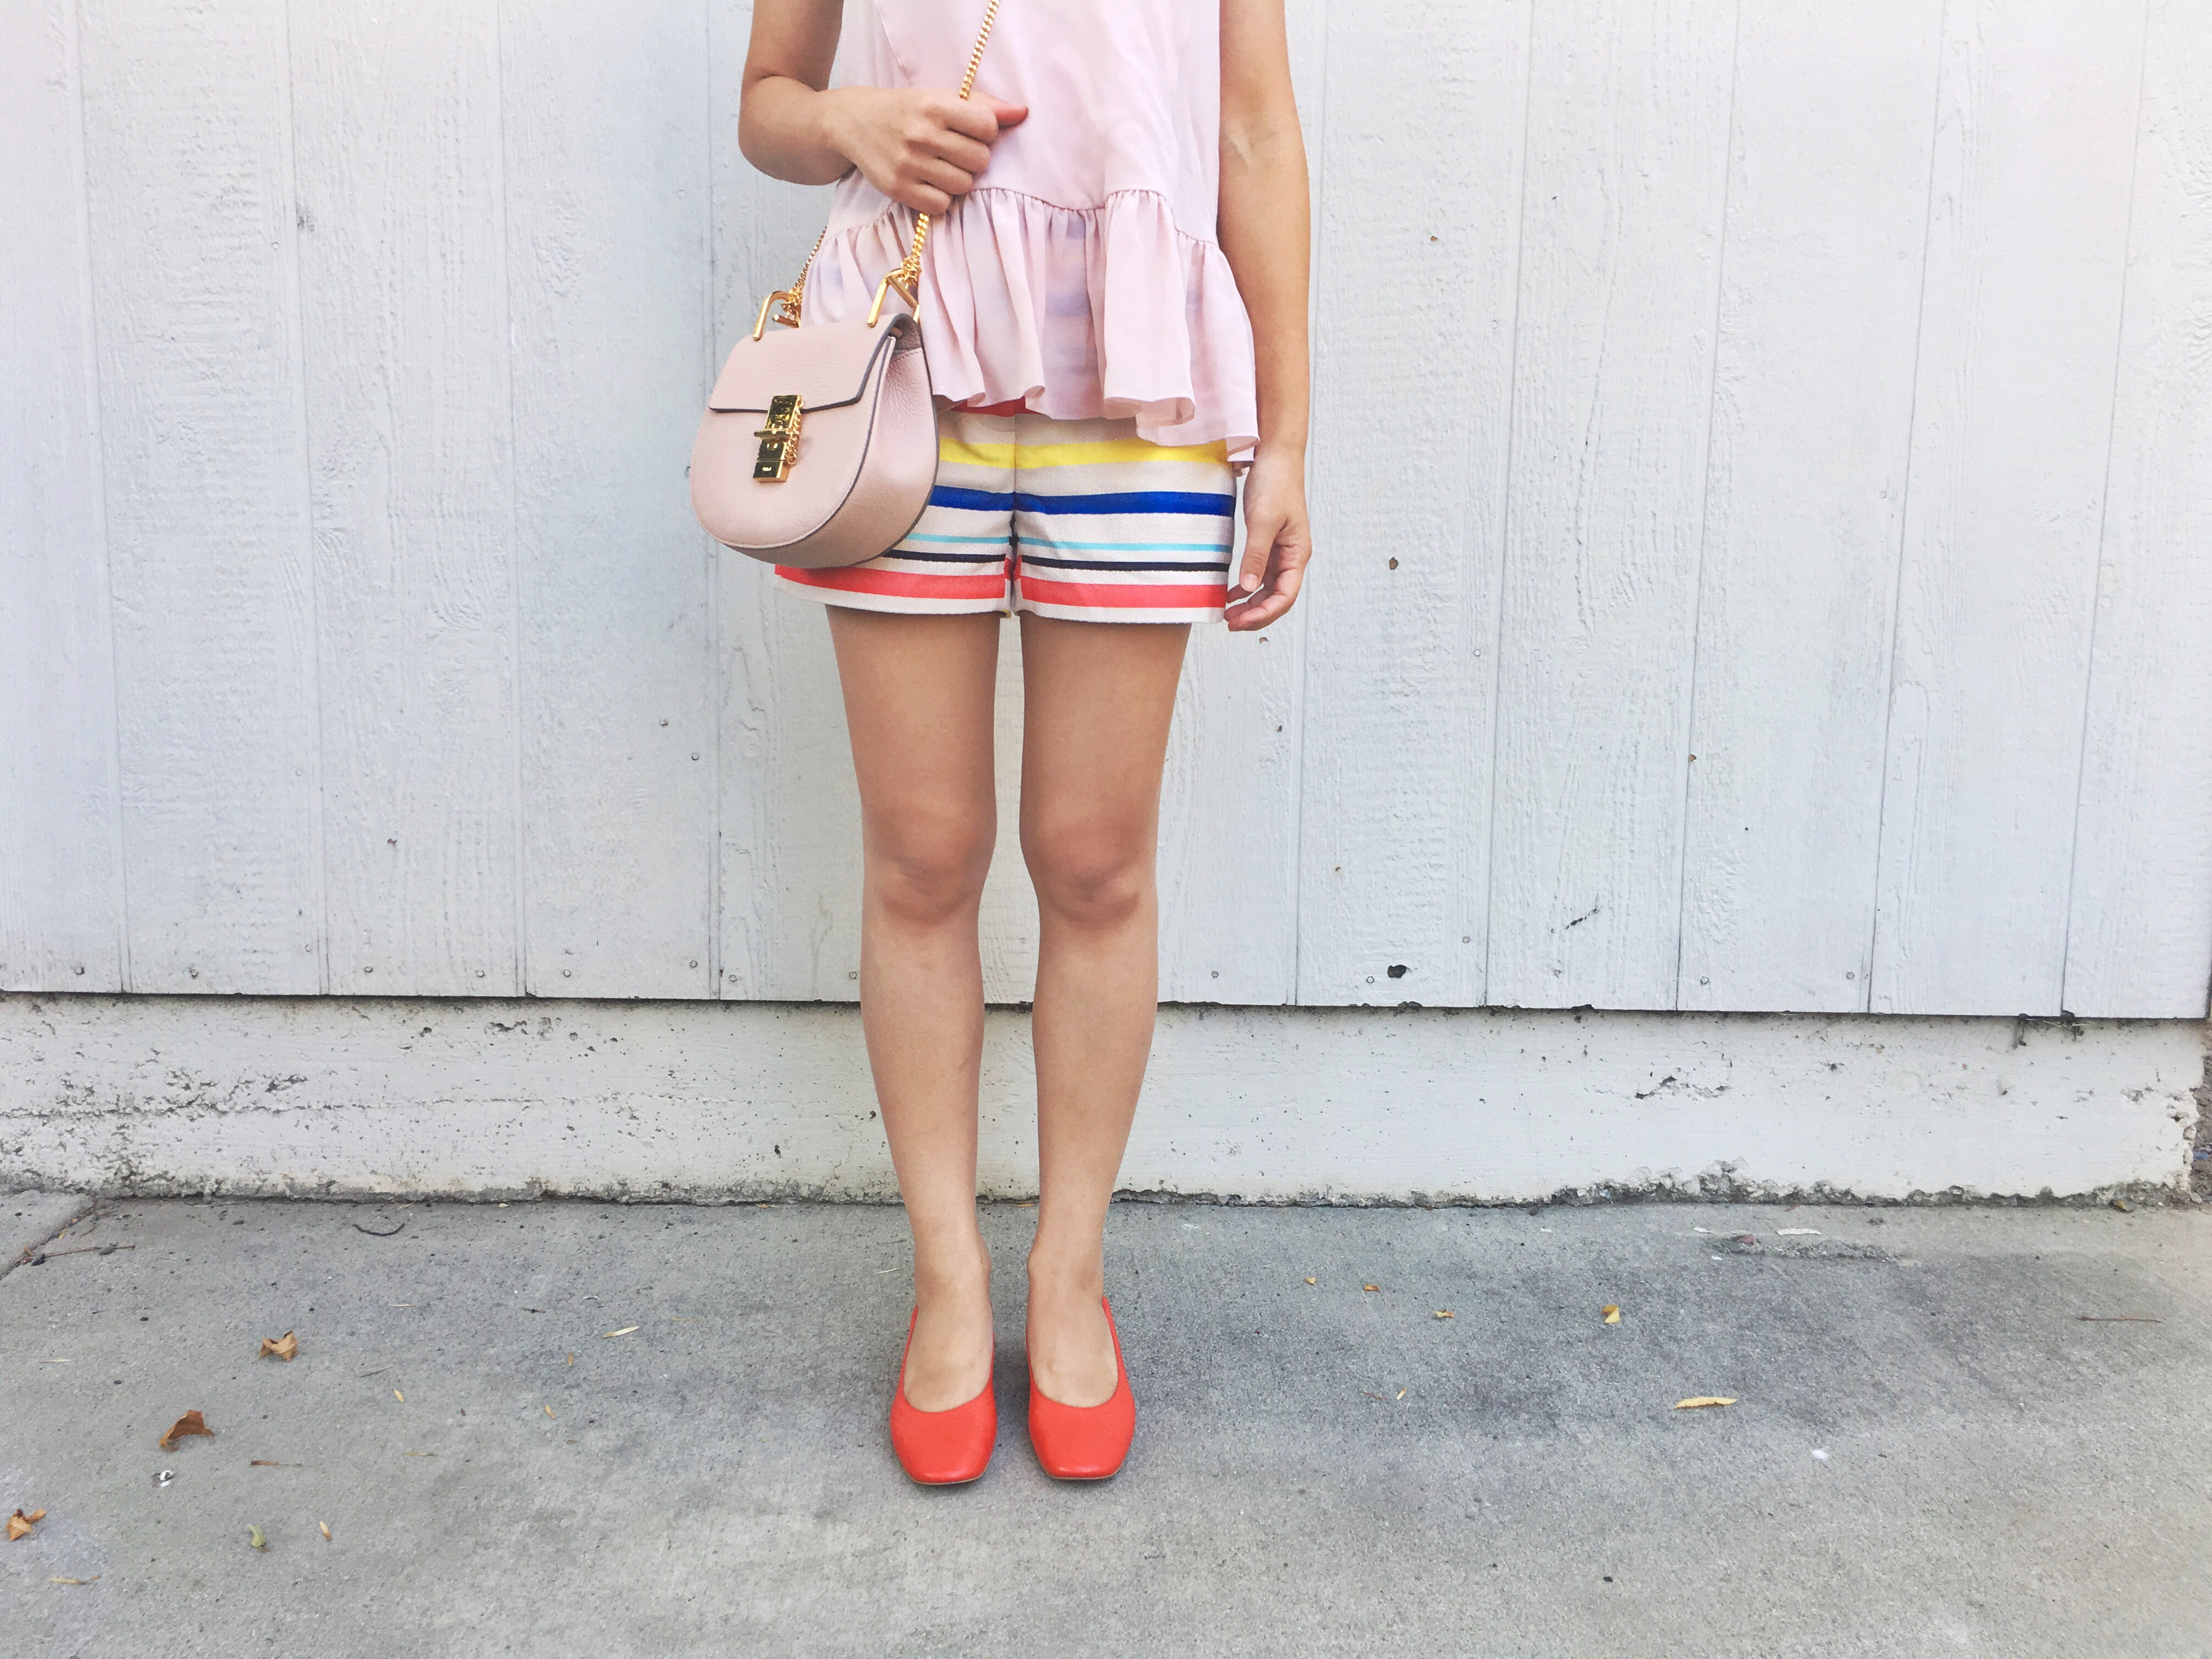 Everlane Day Heel Review (Shorts Outfit) Day 2 of 30